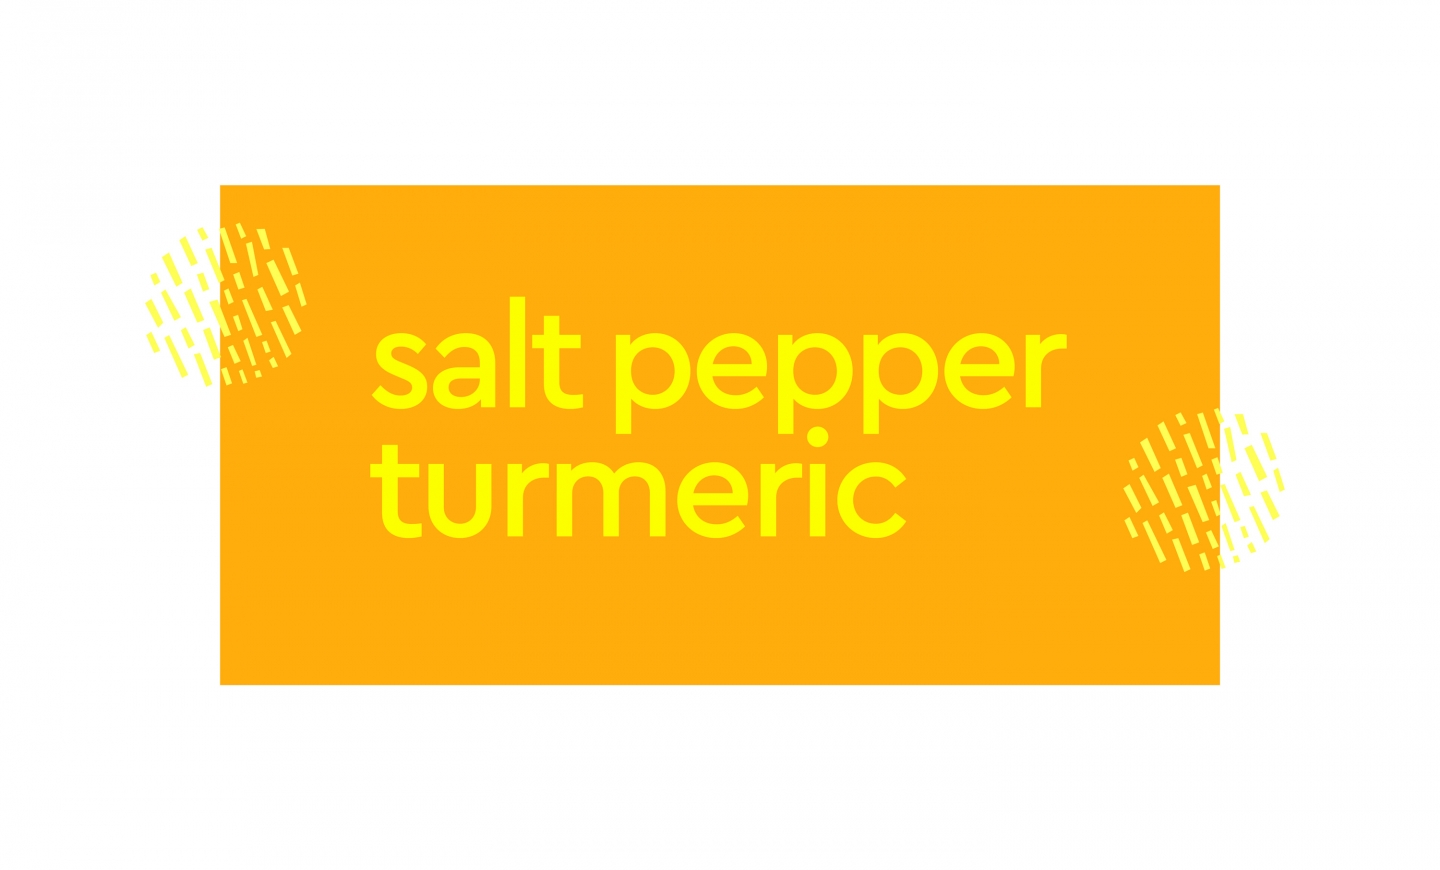 Lotus Pops Salt Pepper Turmeric flavor with patterns